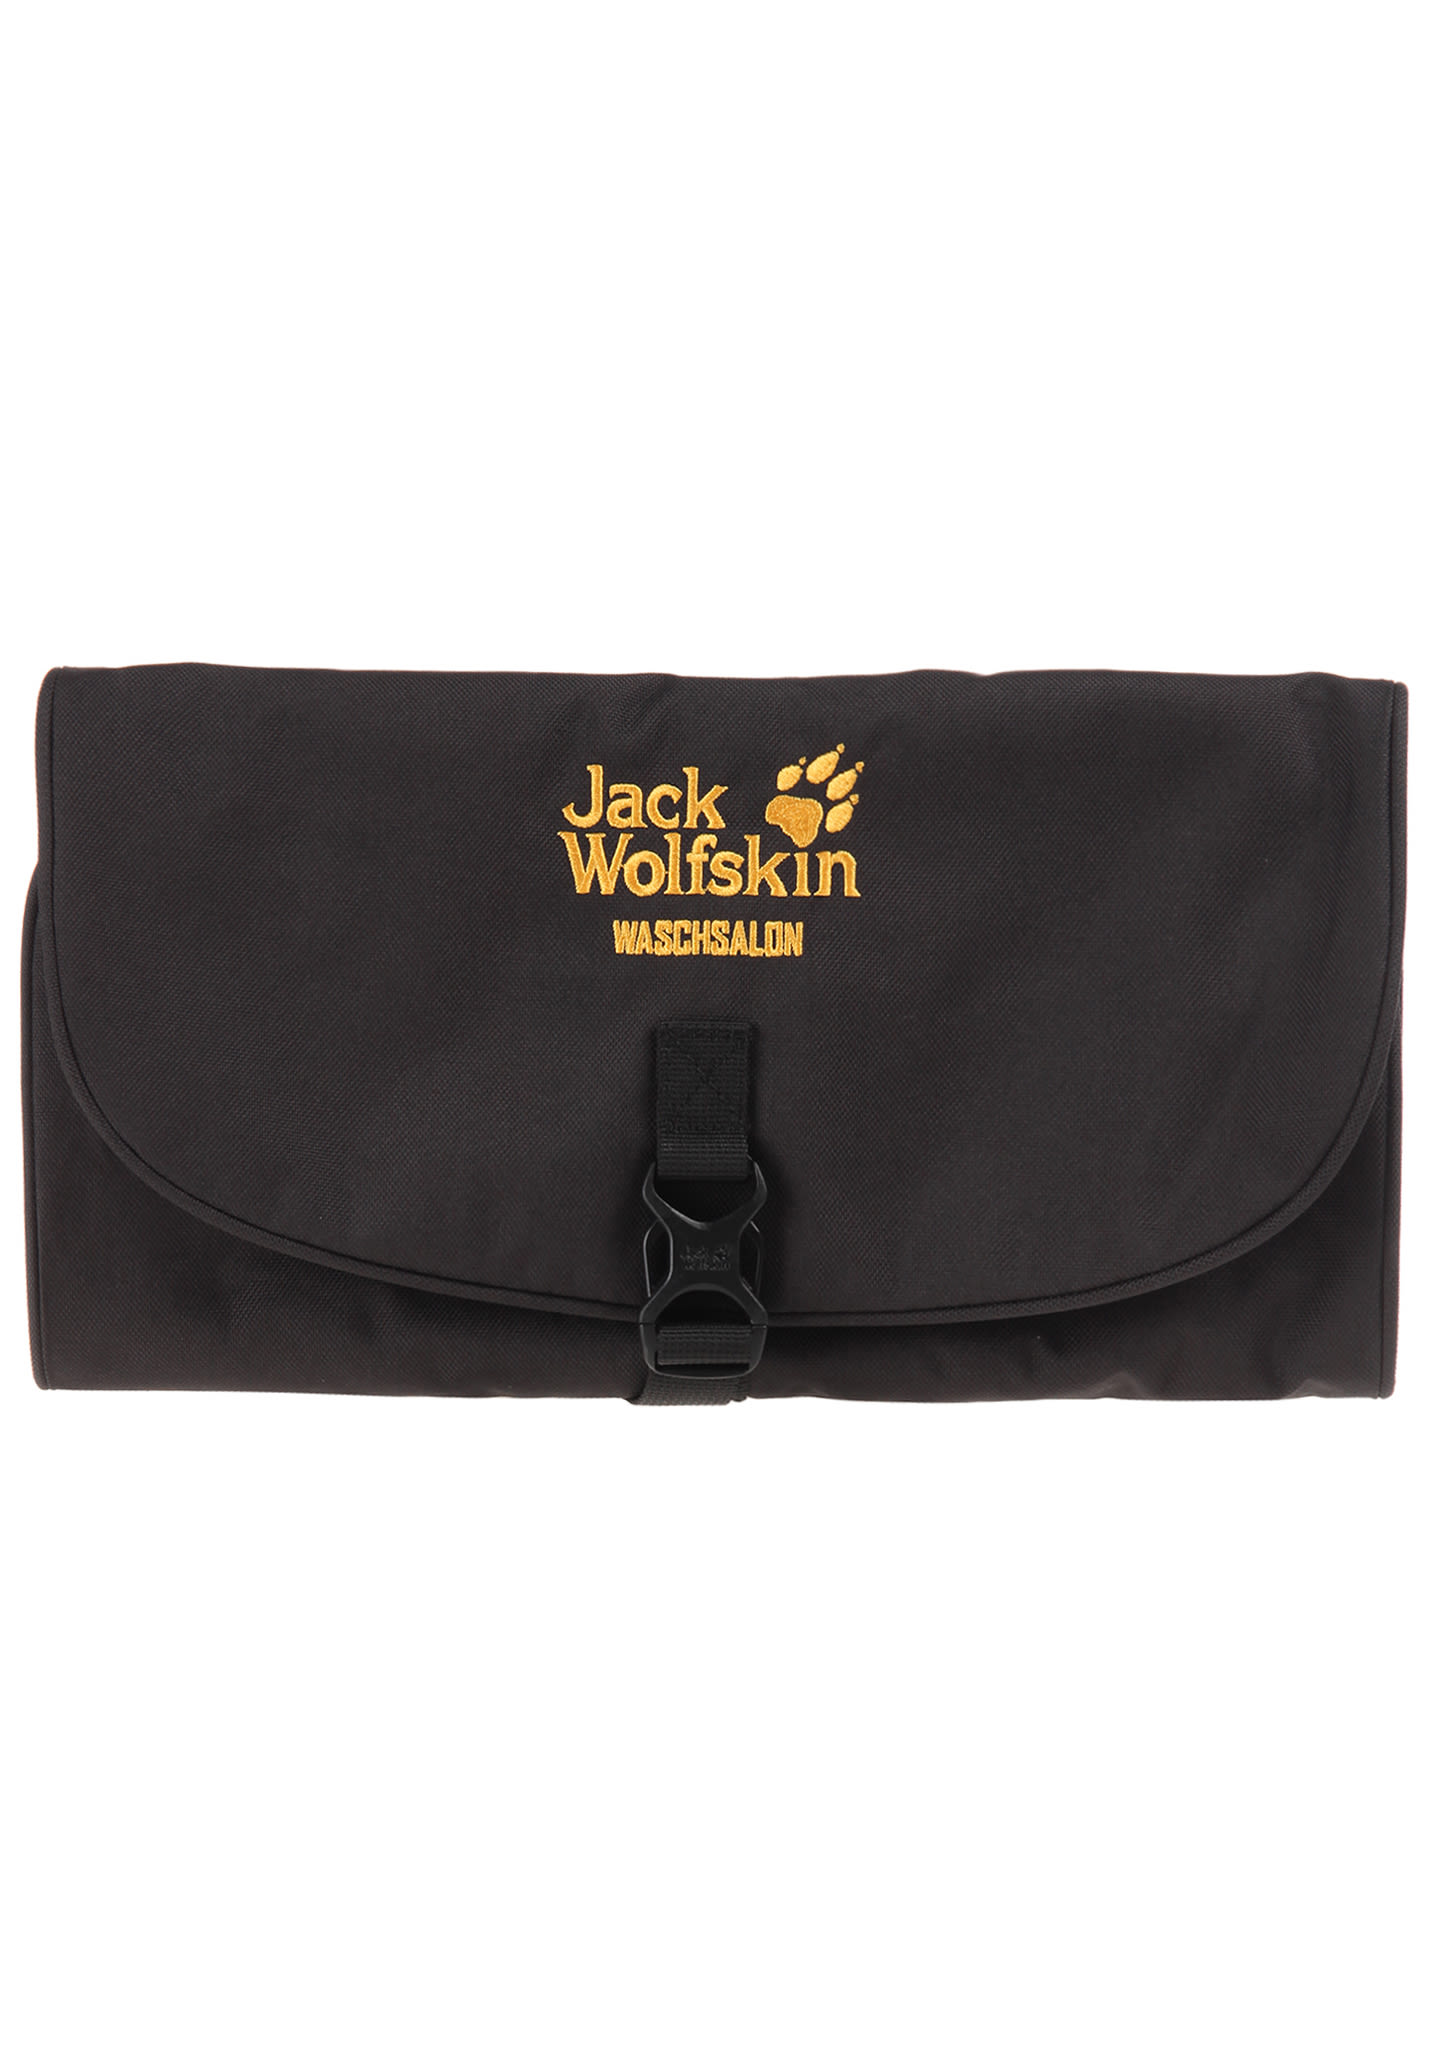 7d6ff1ec73 Jack Wolfskin Waschsalon - Overnight Bag - Black - Planet Sports